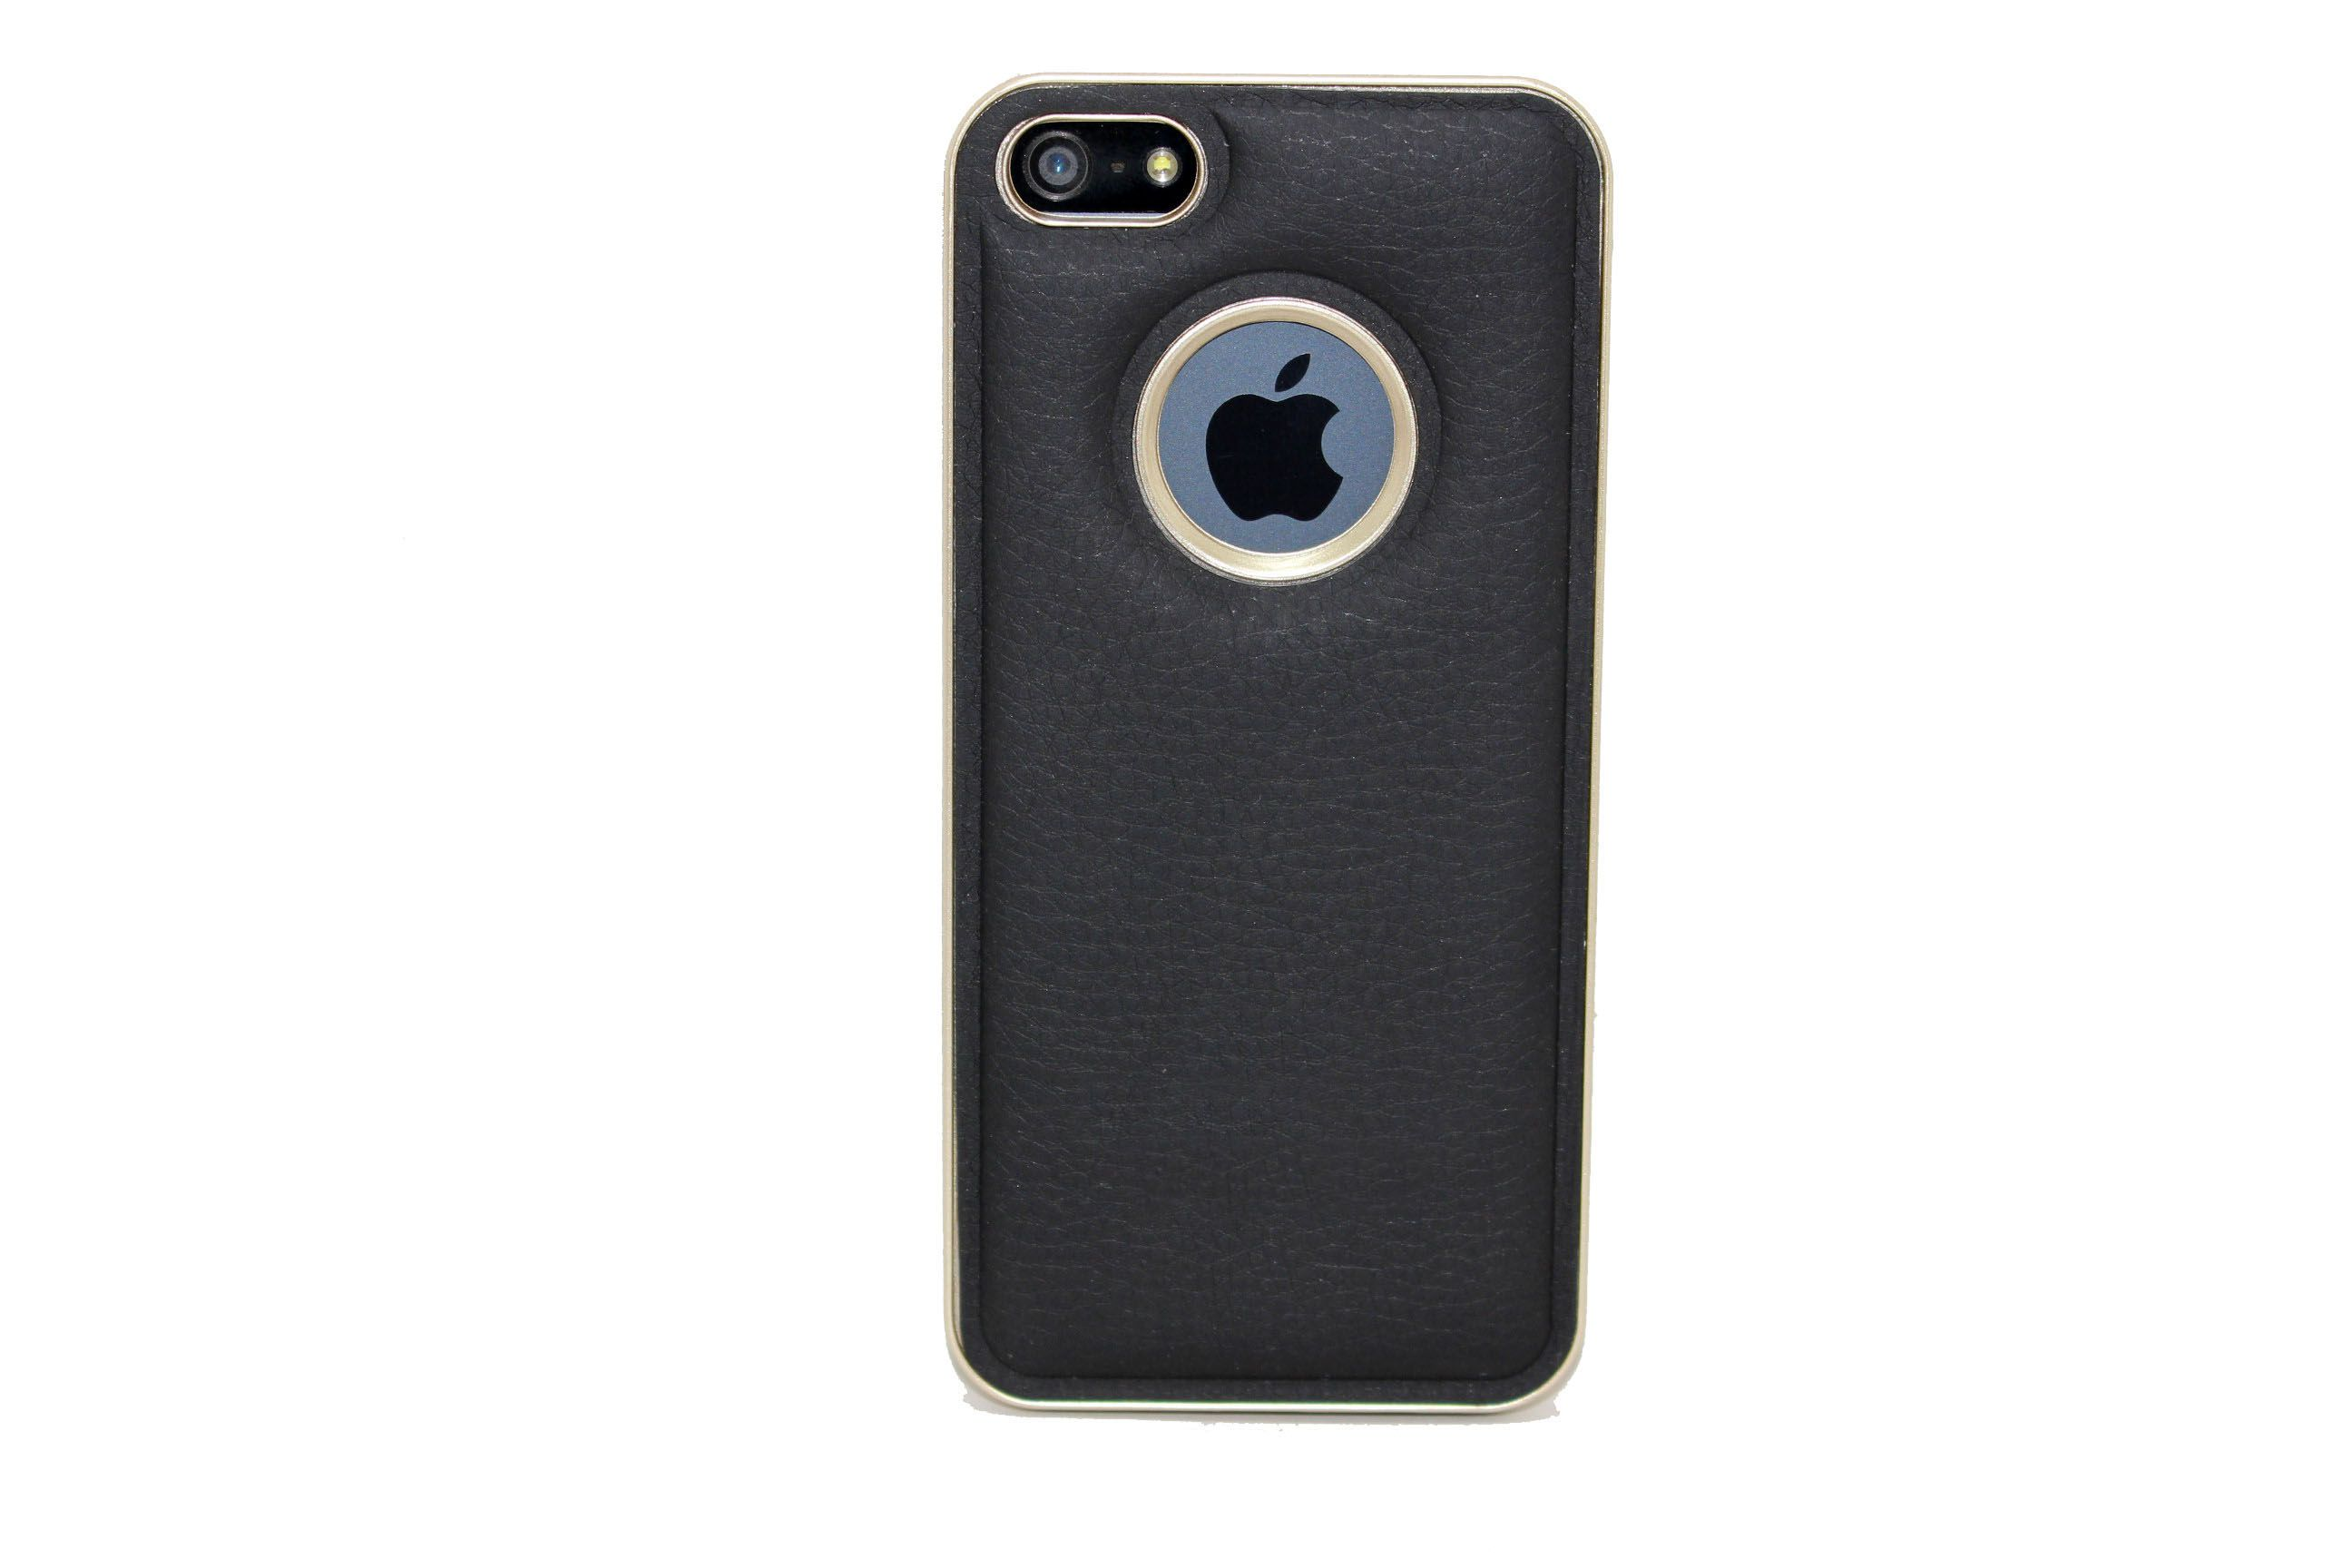 86262ad5e705f8 Apple iPhone 4S Cover by Store At Ur Door - Black - Plain Back Covers Online  at Low Prices